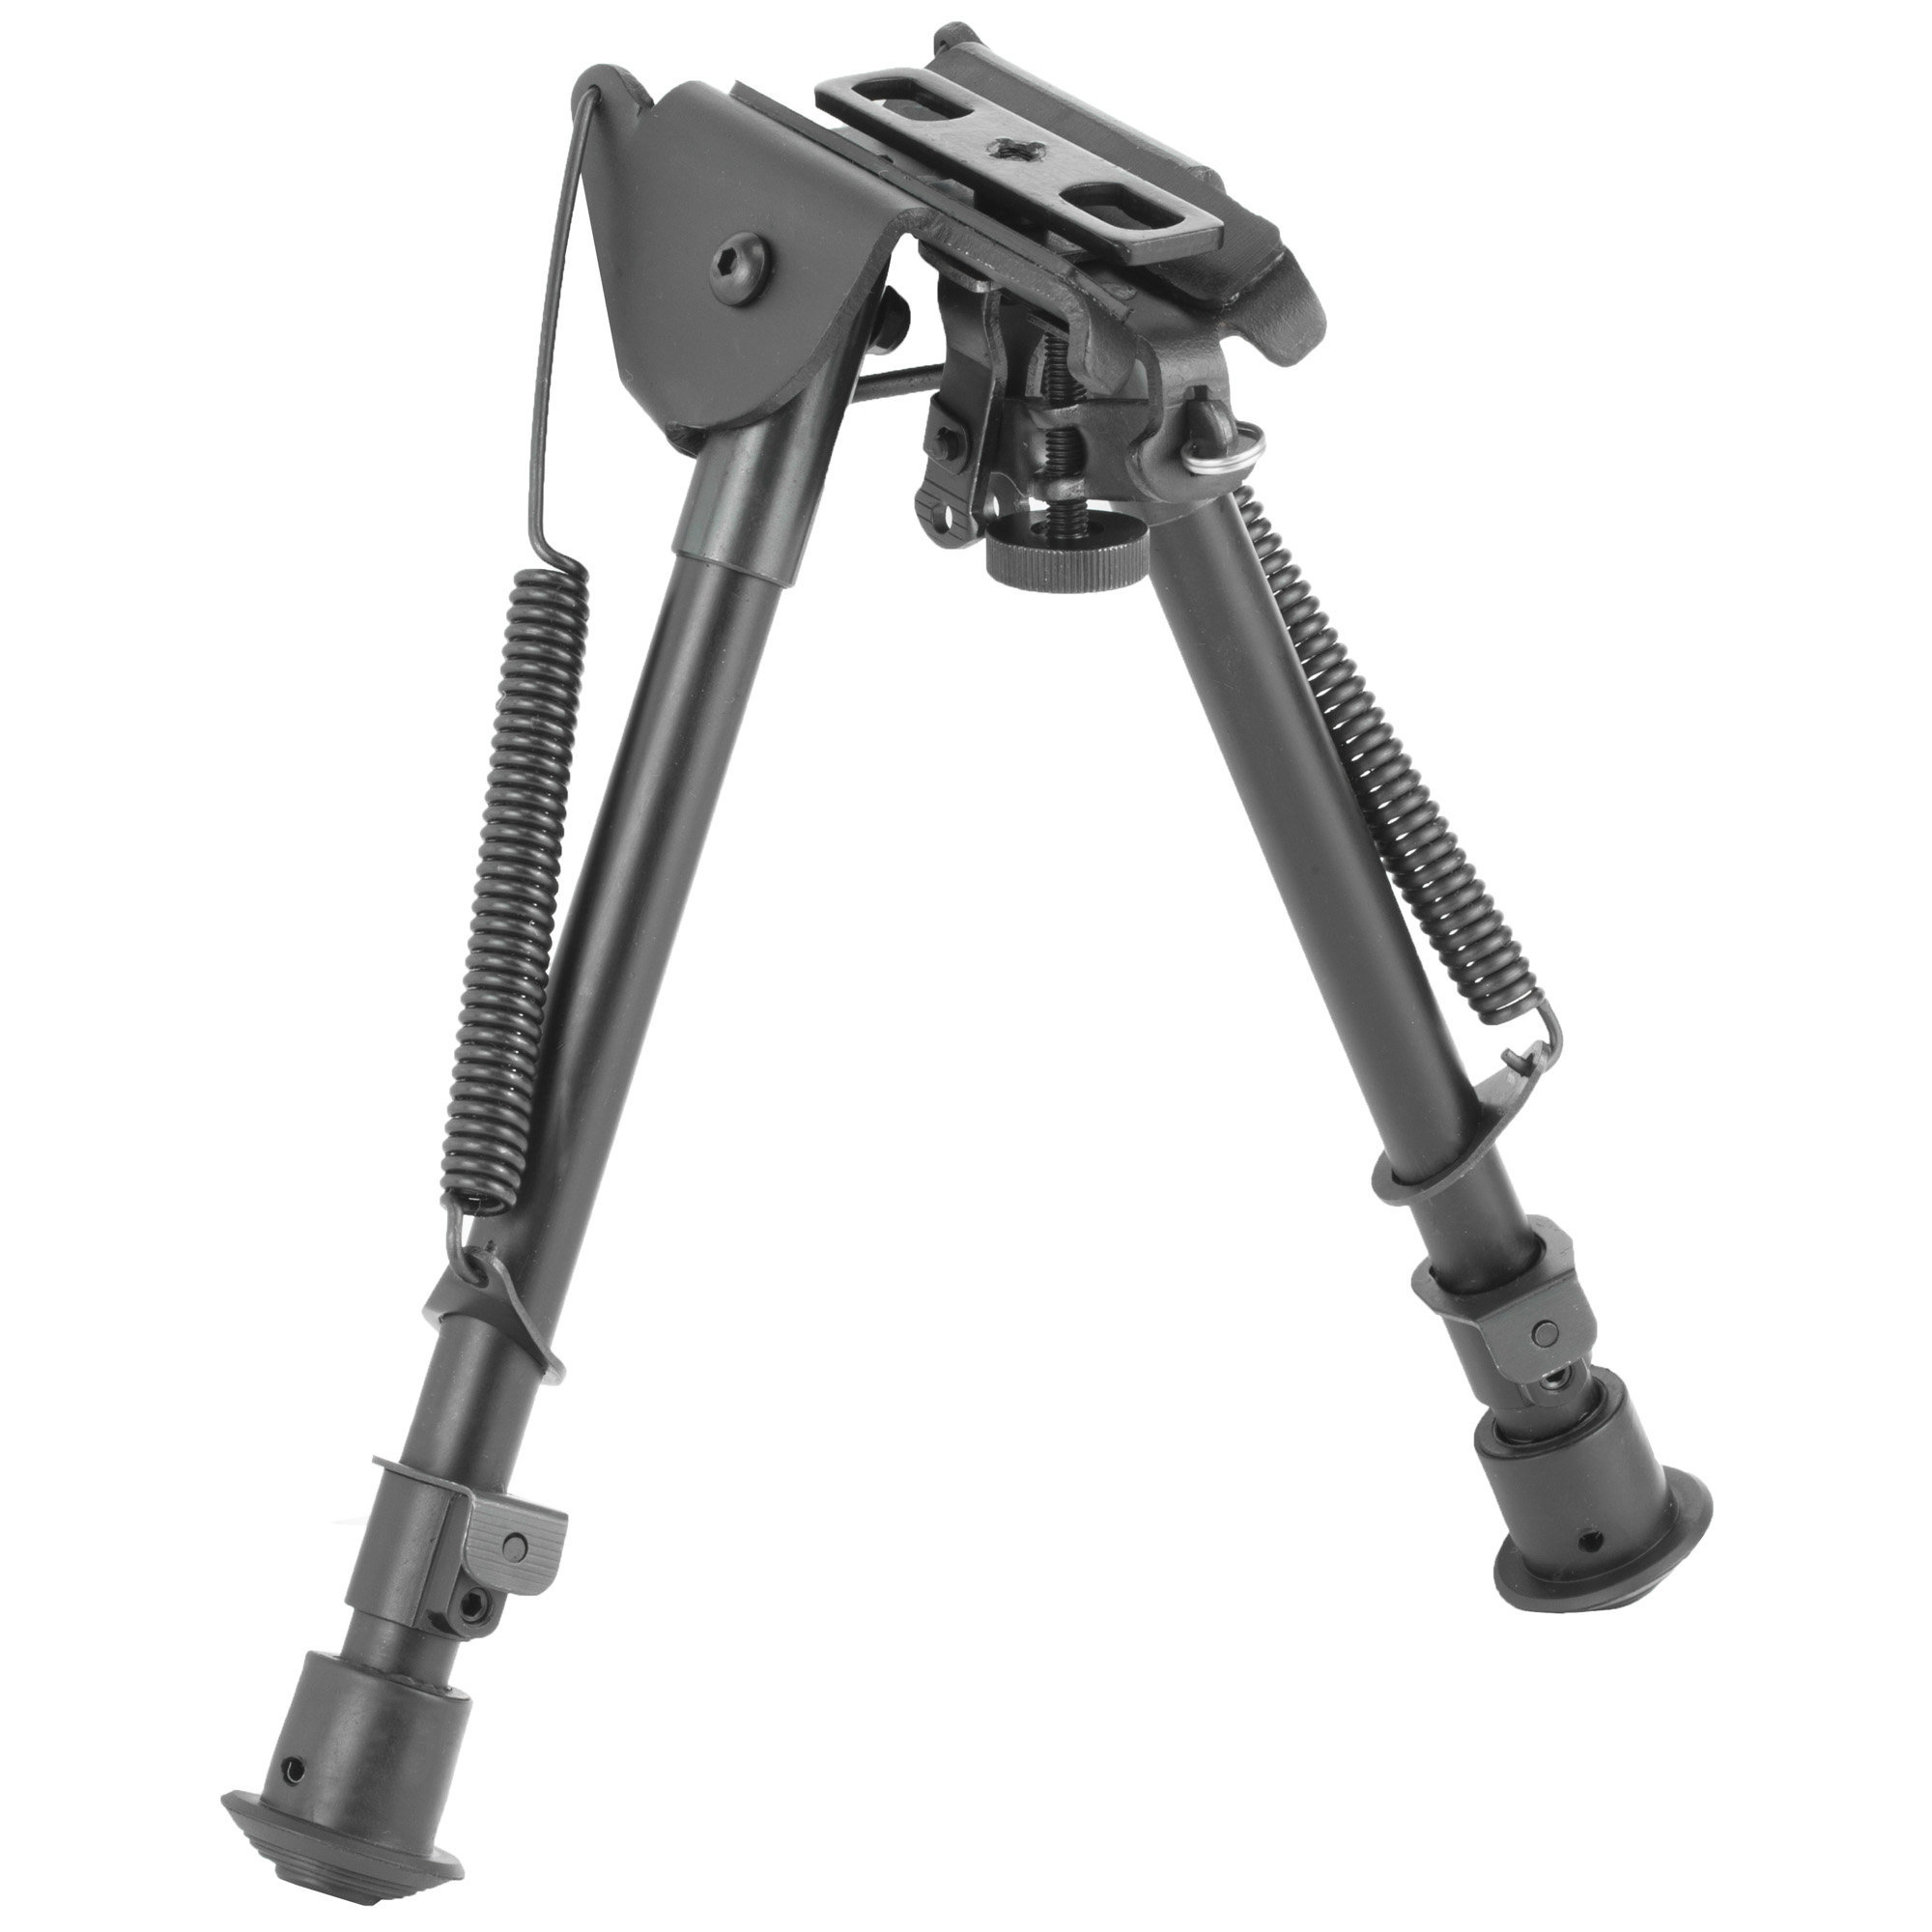 "This full size precision grade bipod with notched legs mounts directly onto most sling swivel studs. It includes three adapters for flexible installation. An AR-15 GI handguard adapter"" universal rifle barrel mount and Weaver/Picatinny type rail adapter with sling stud"